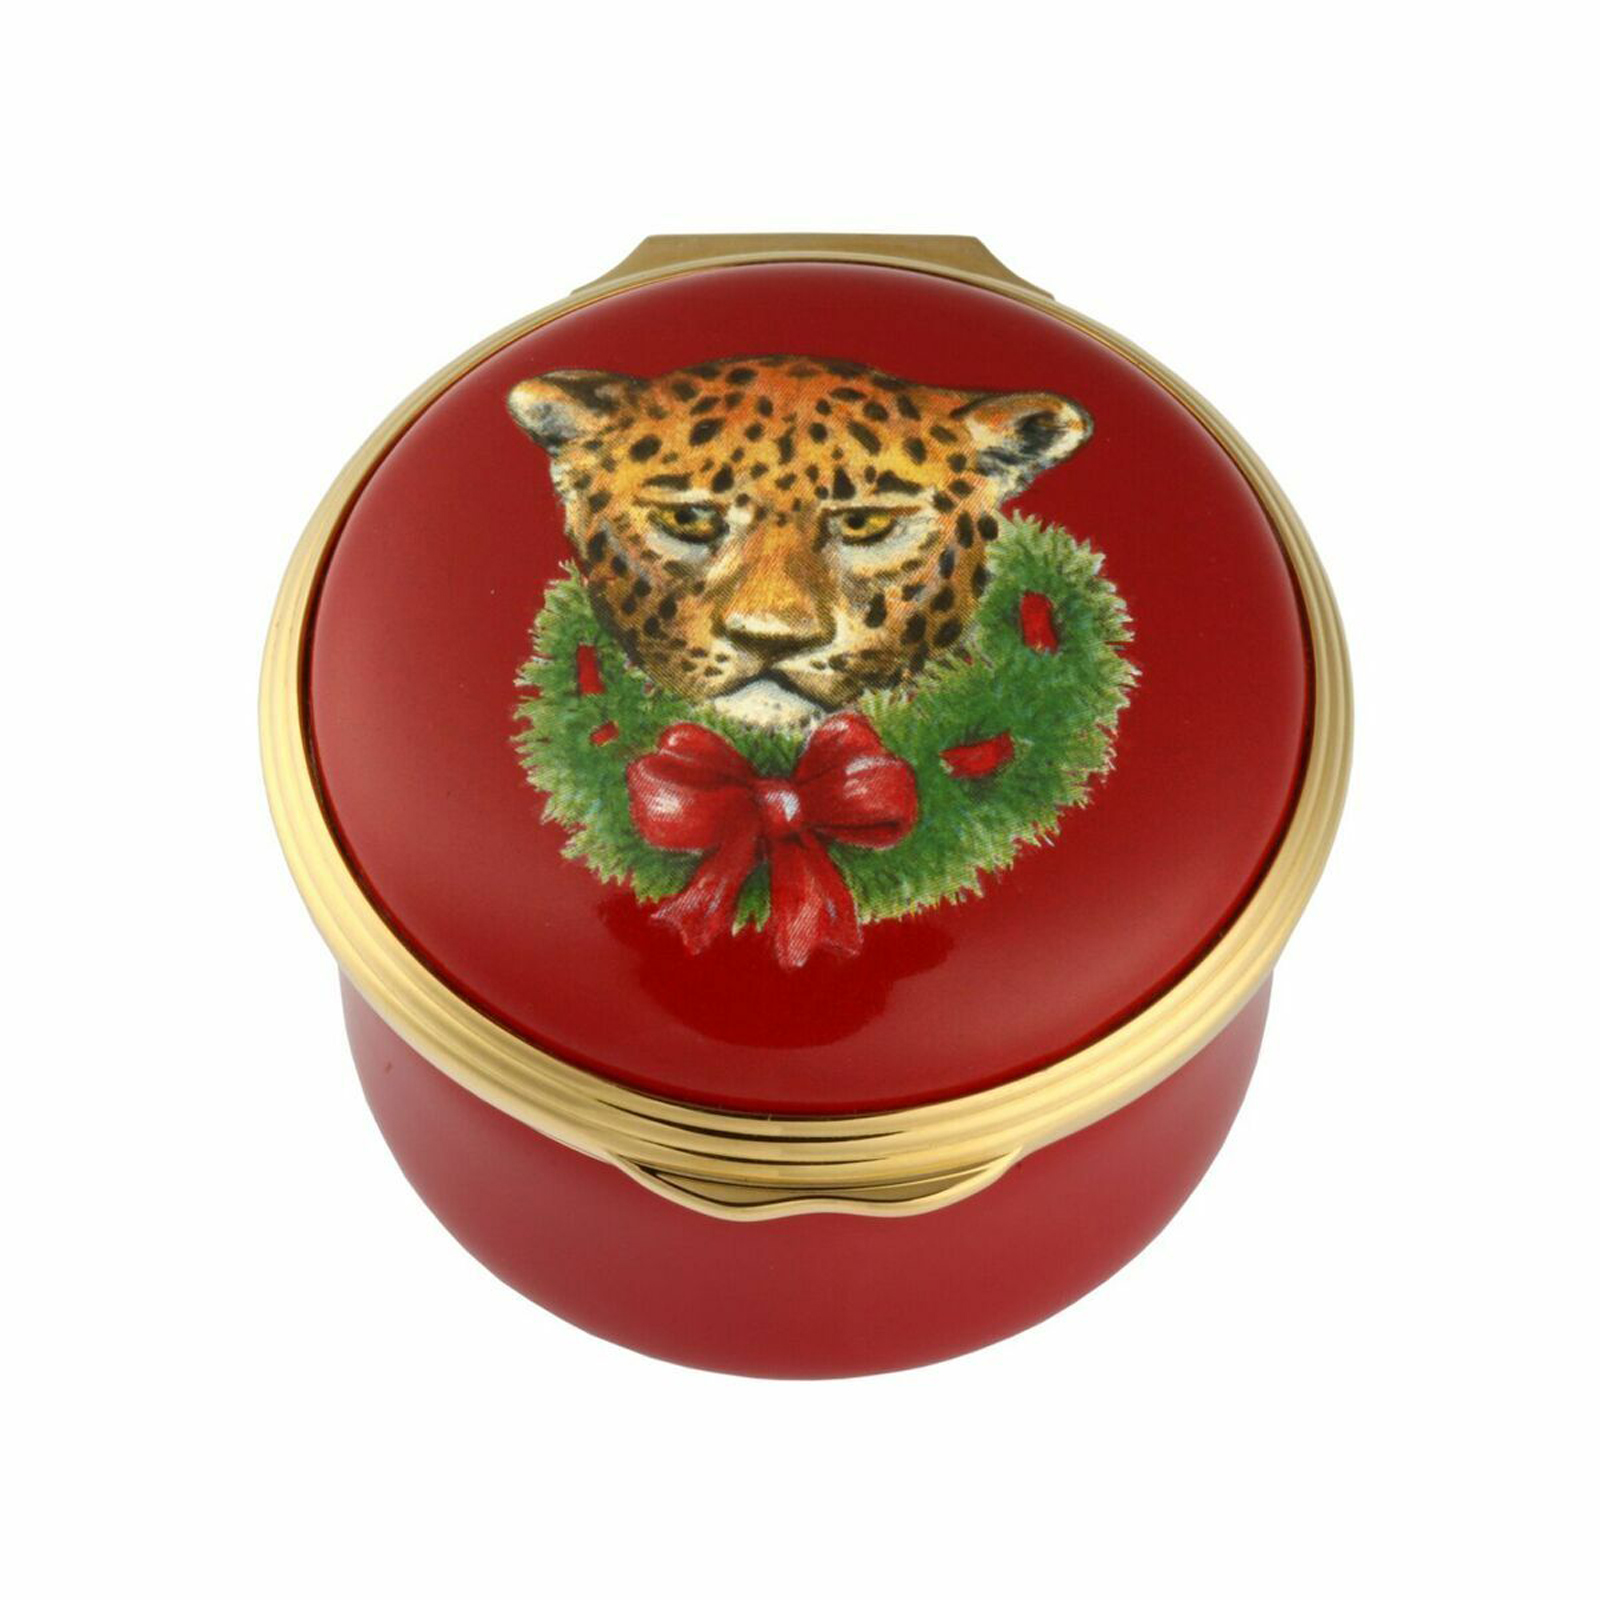 Festive Leopard Christmas Enamel Box by Halcyon Days